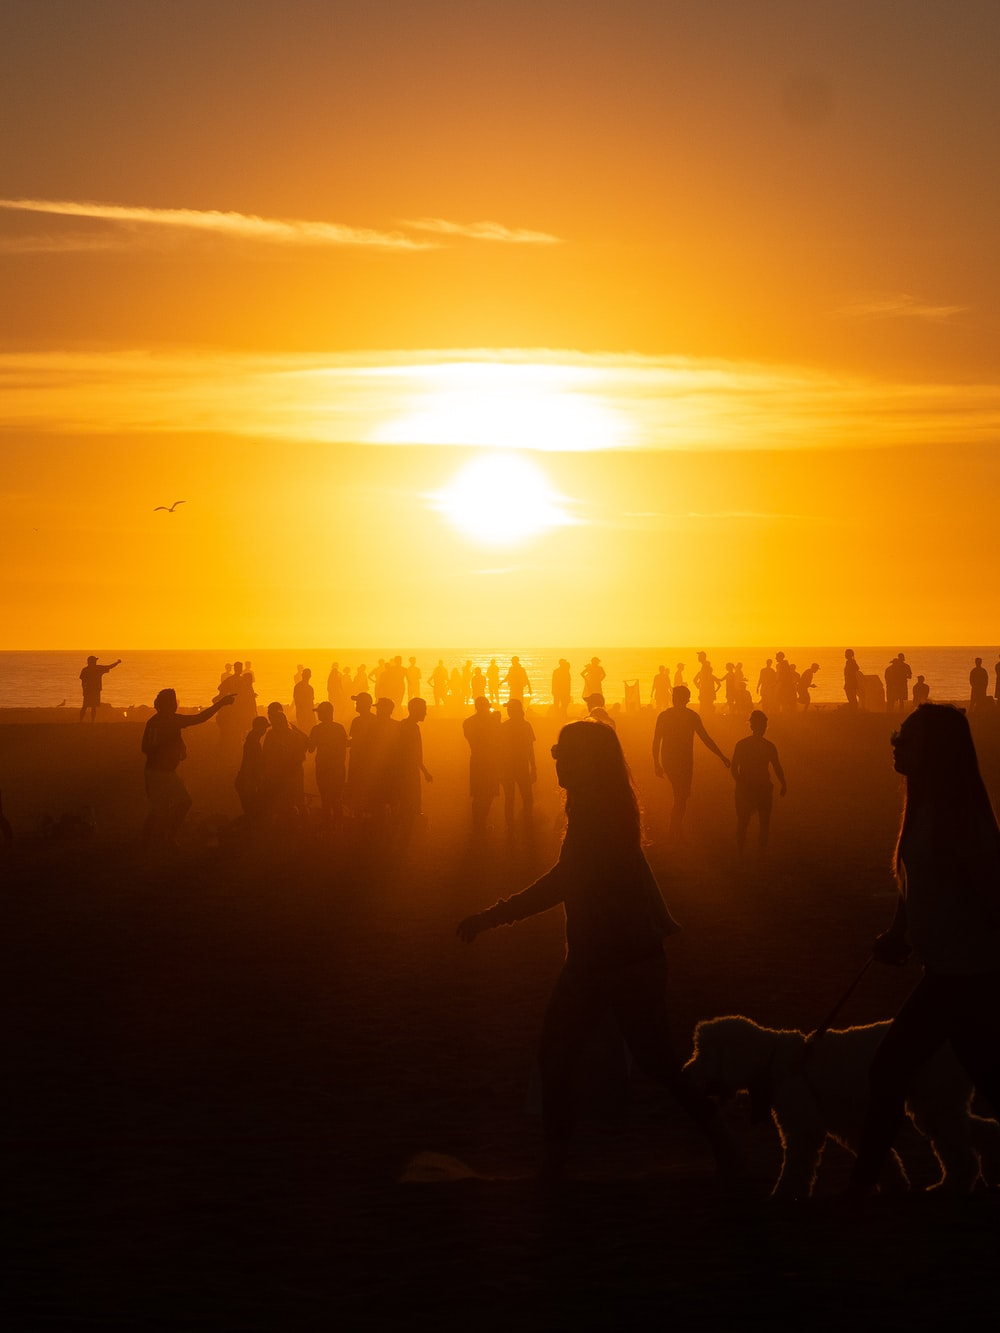 silhouette of people on beach during golden hour